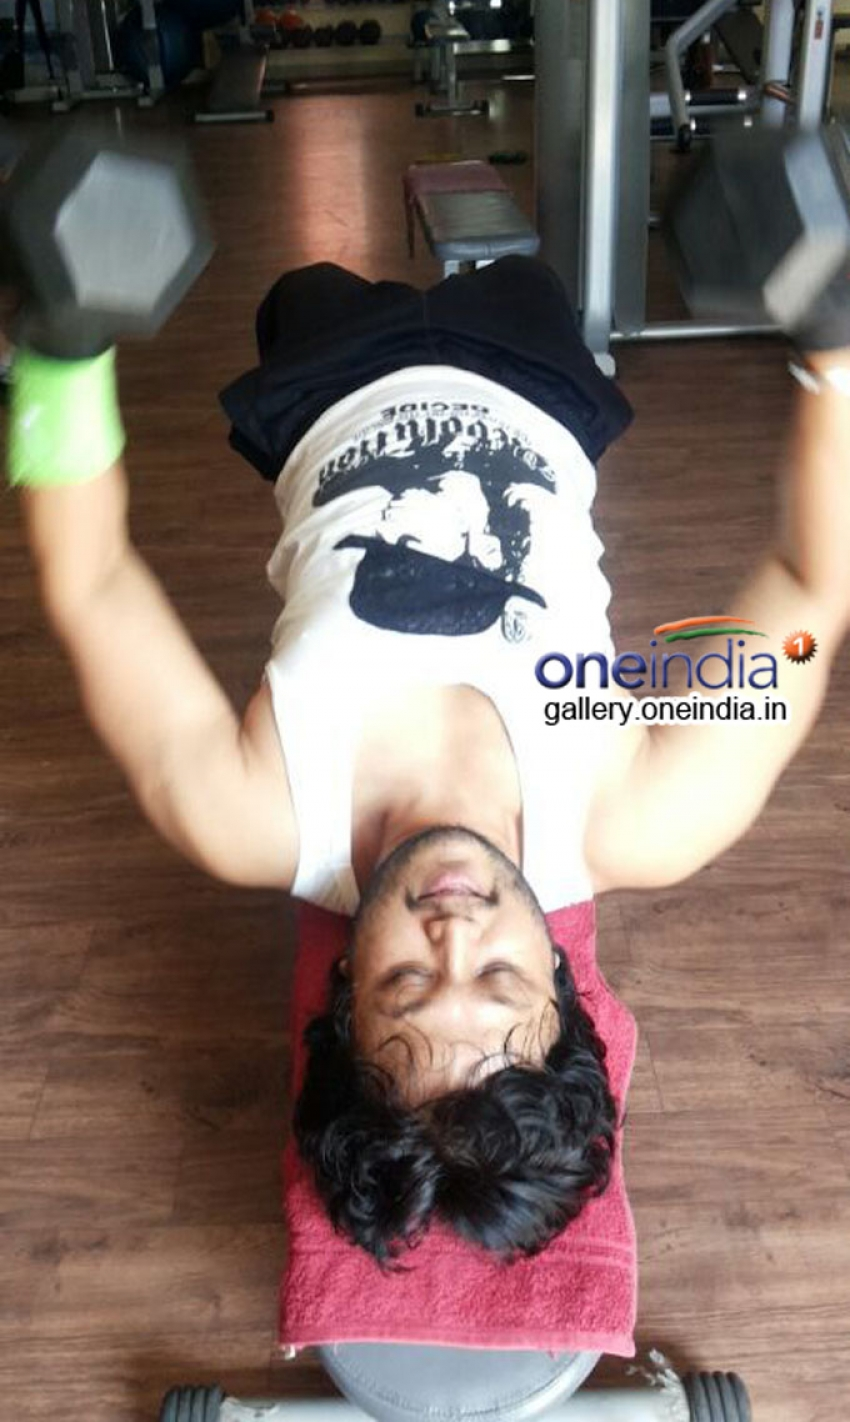 Golden Star Ganesh work out in gym for Dil Rangeela Photos